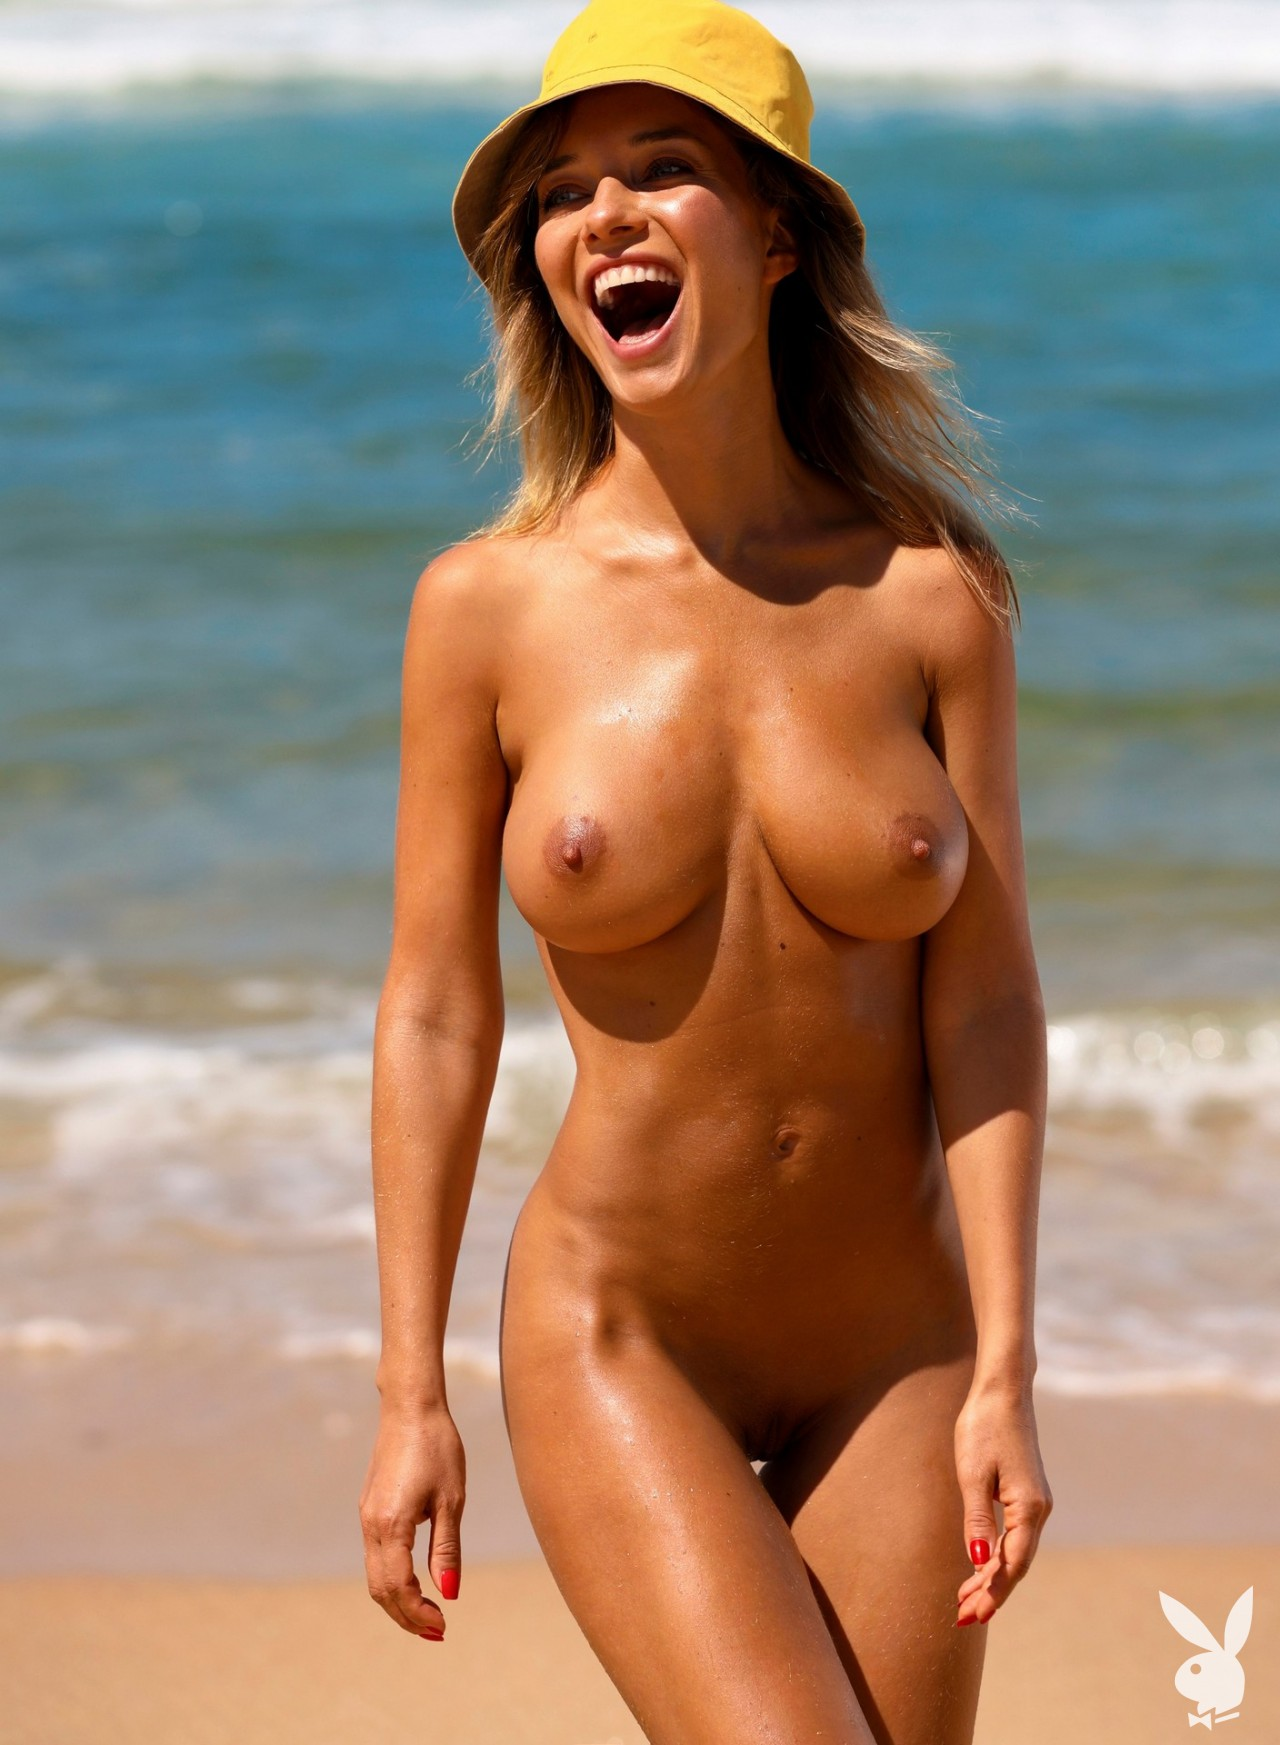 Natalia Andreeva Big Tits Go to the Beach for Playboy